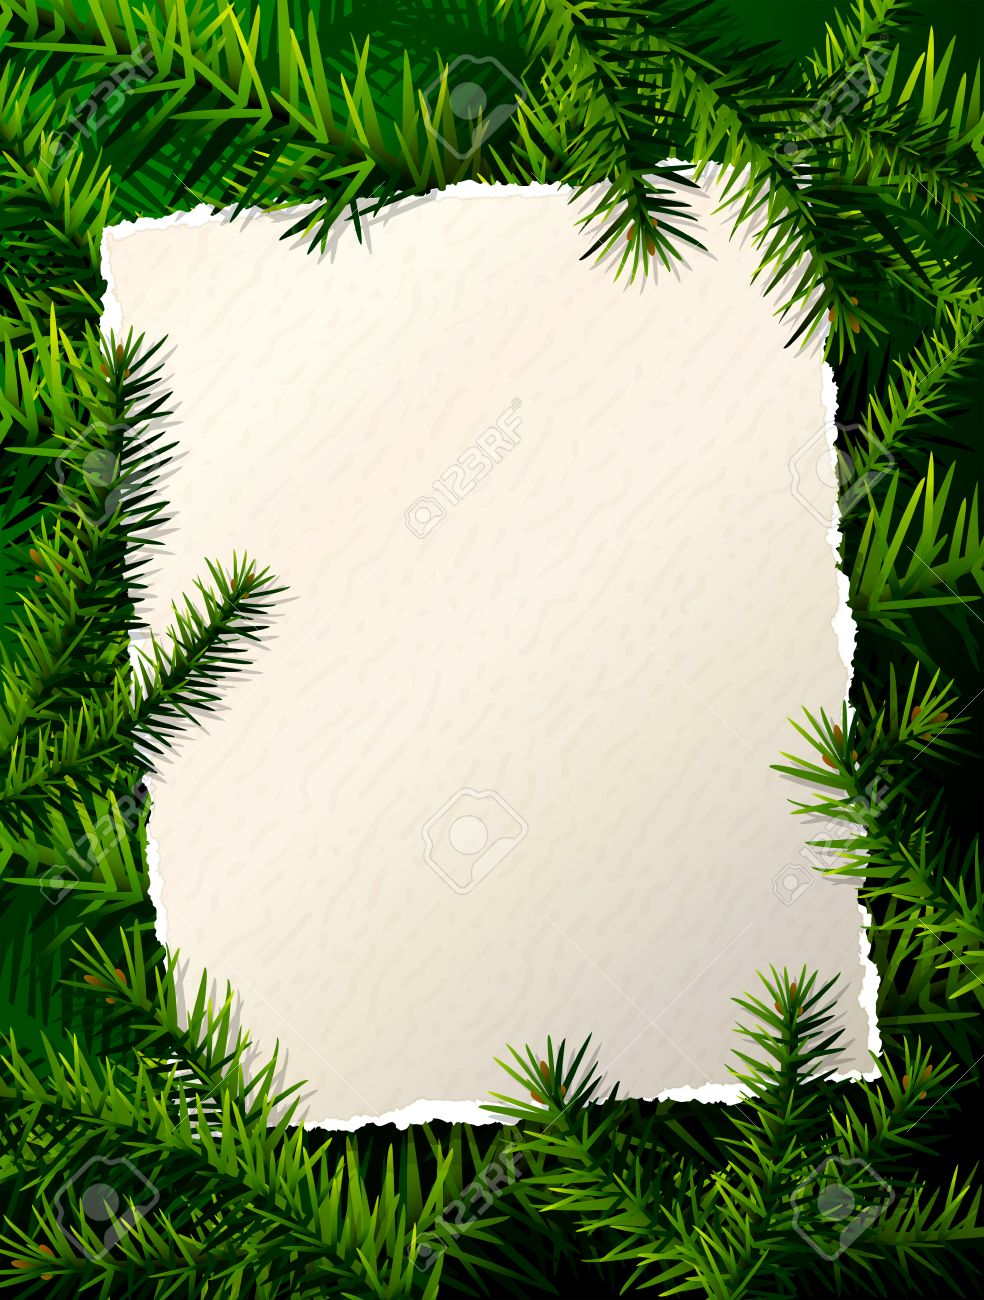 paper for christmas list against pine branches christmas template paper for christmas list against pine branches christmas template christmas tree twigs qualitative